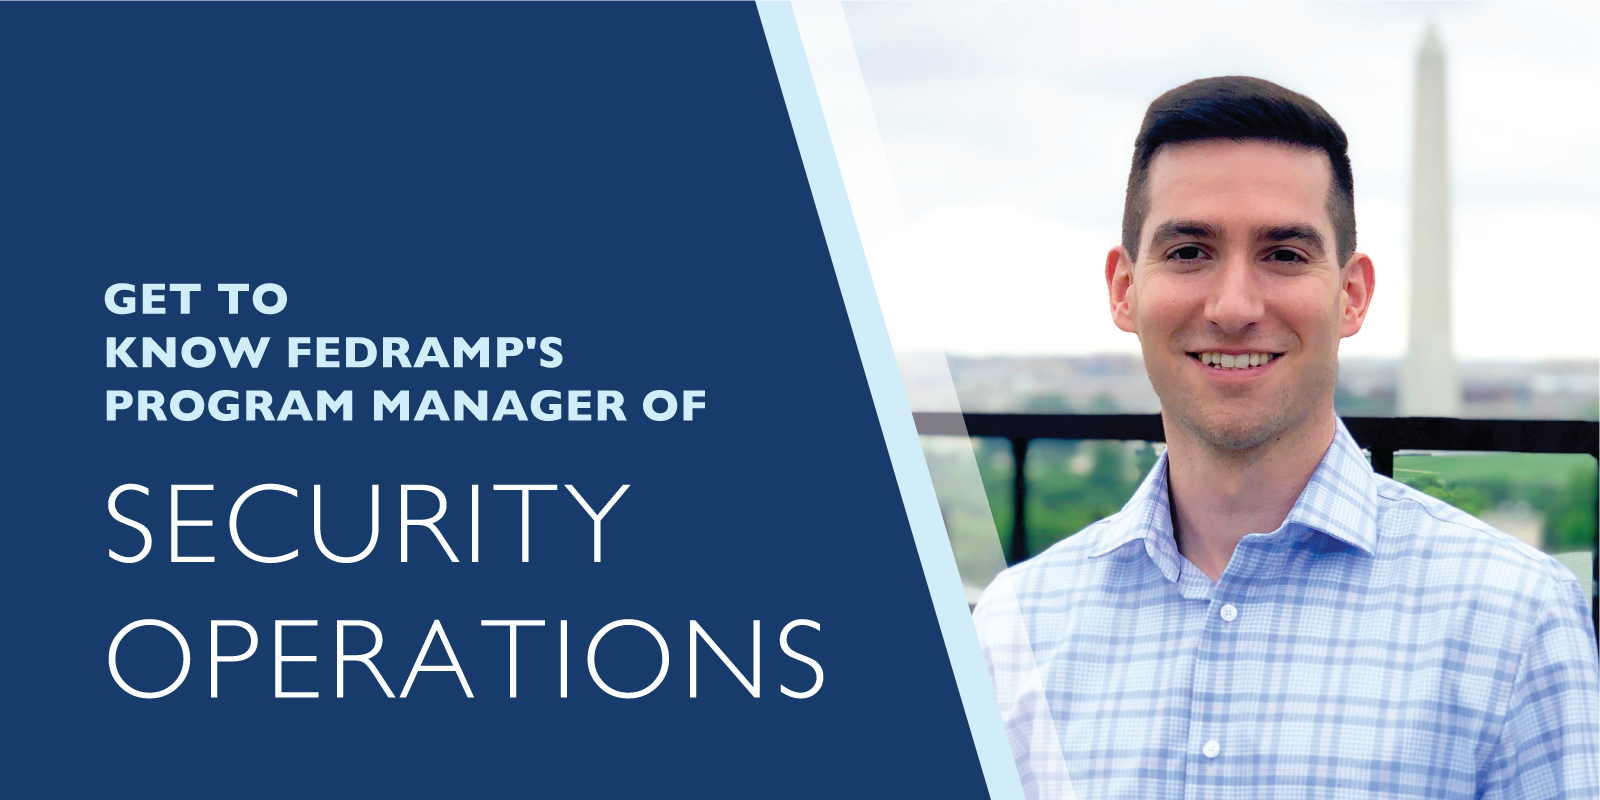 Get to Know FedRAMP's Program Manager of Security Operations